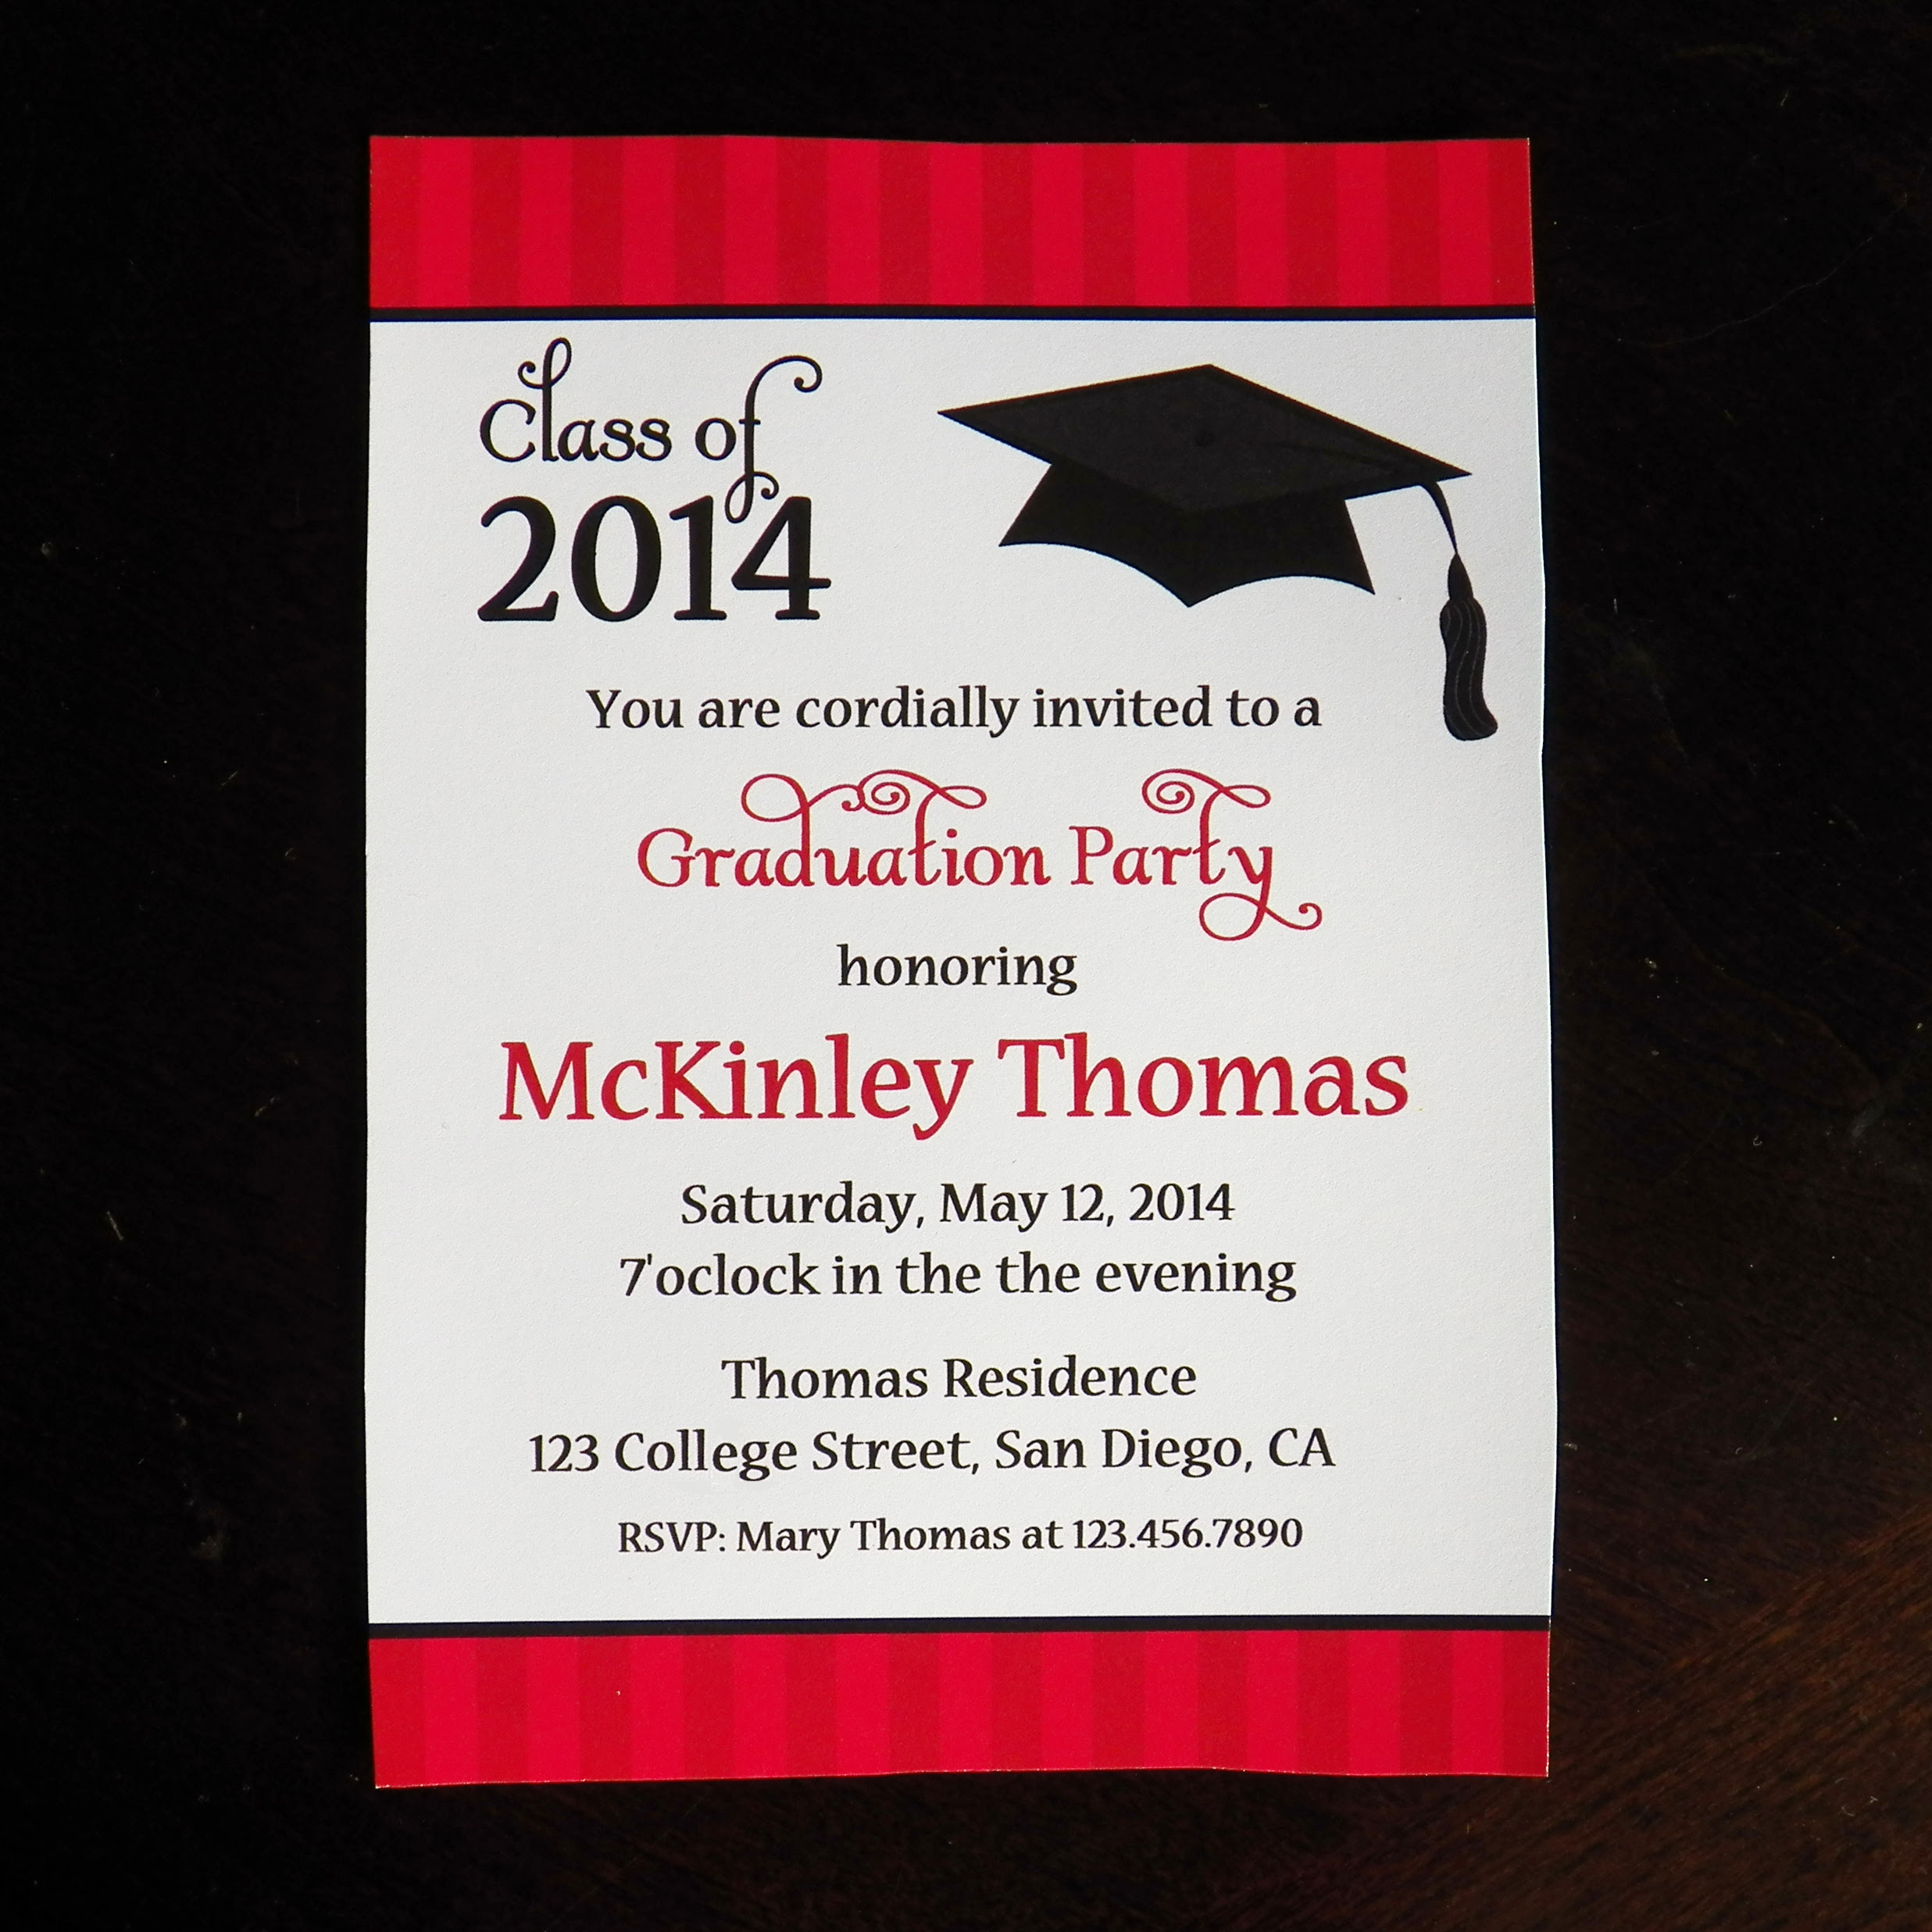 Graduation Party Hats Off To Mckinley That Party Chick